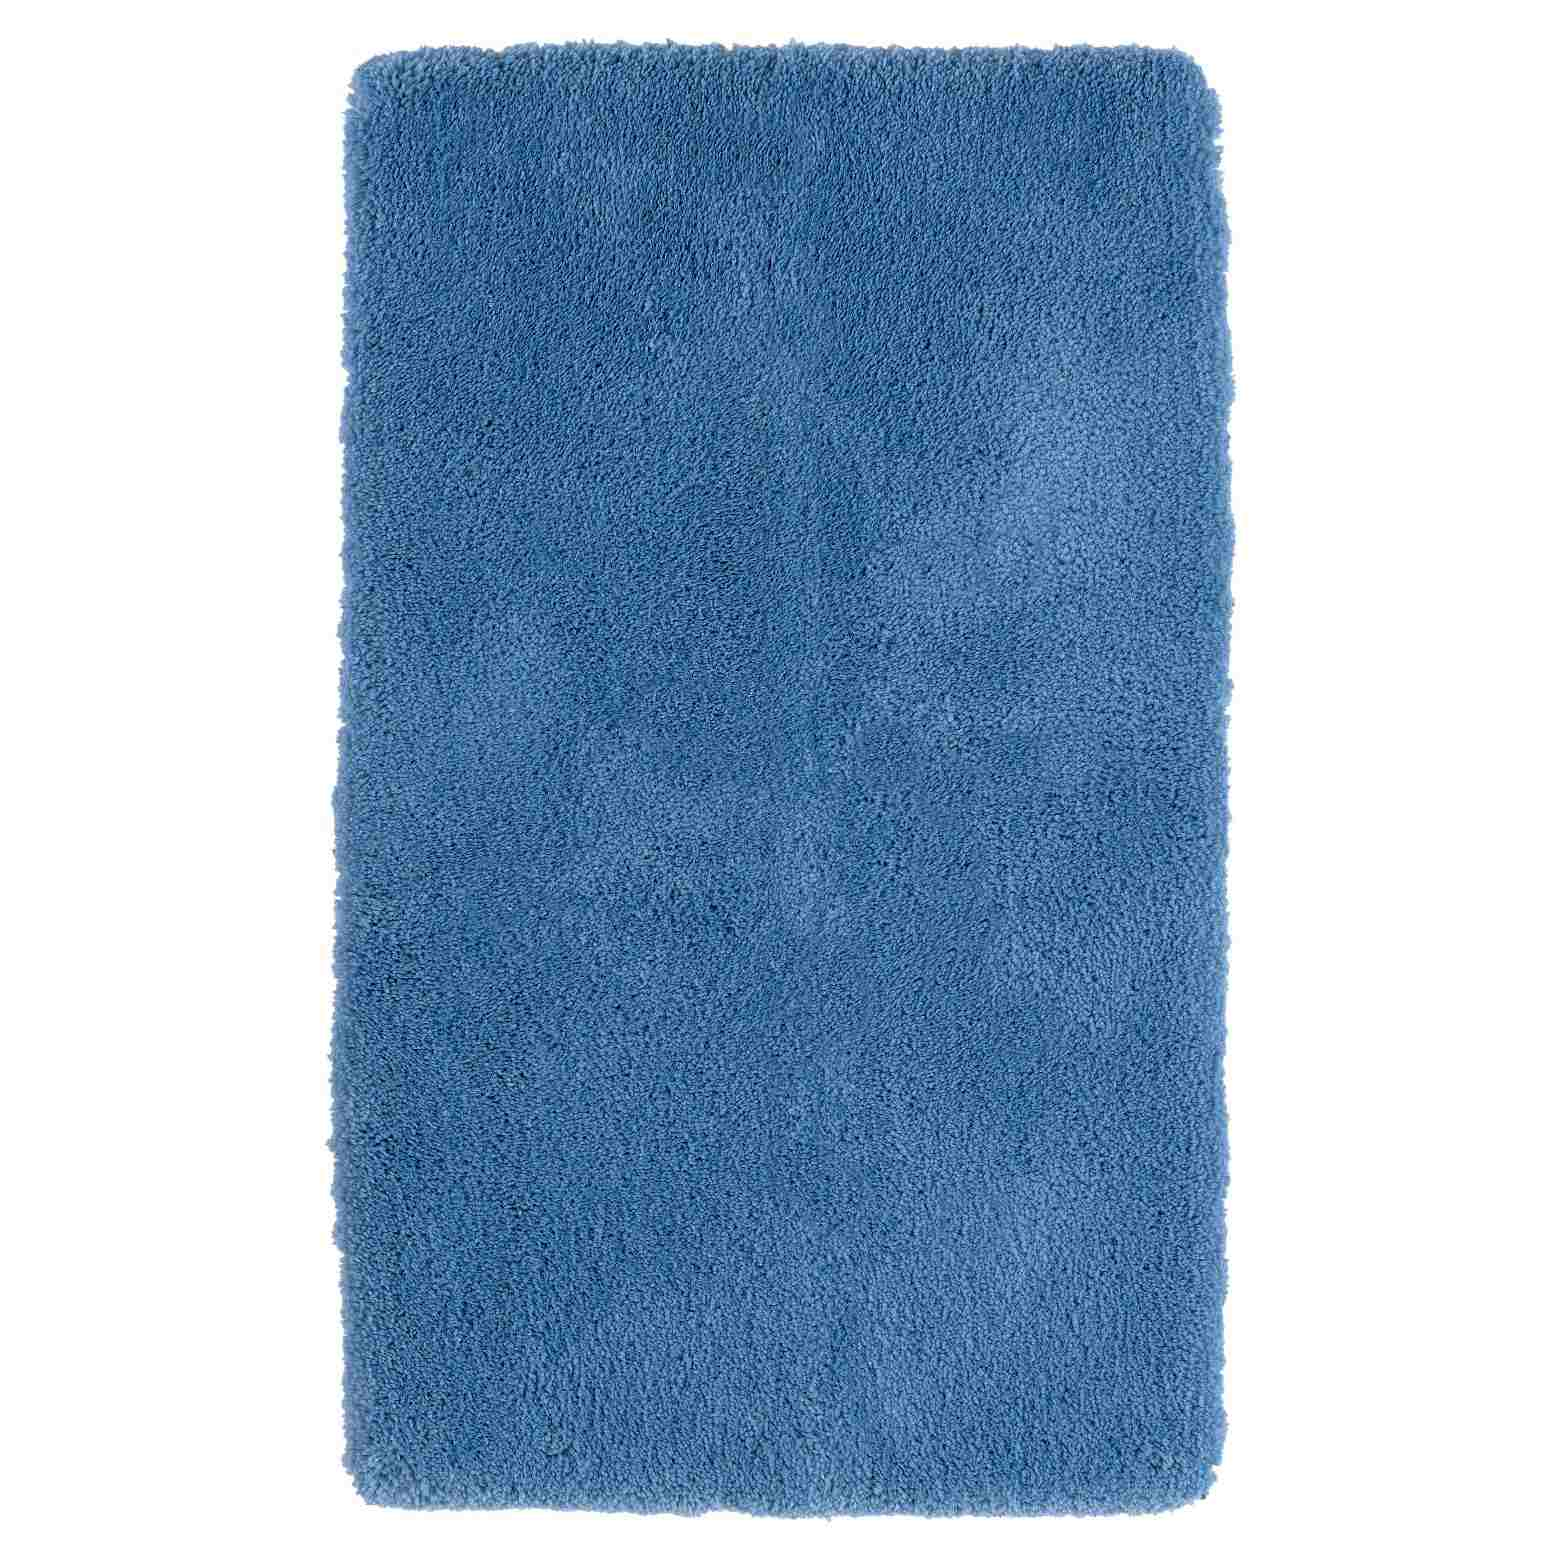 The 8 Best Bath Mats to Buy in 2018